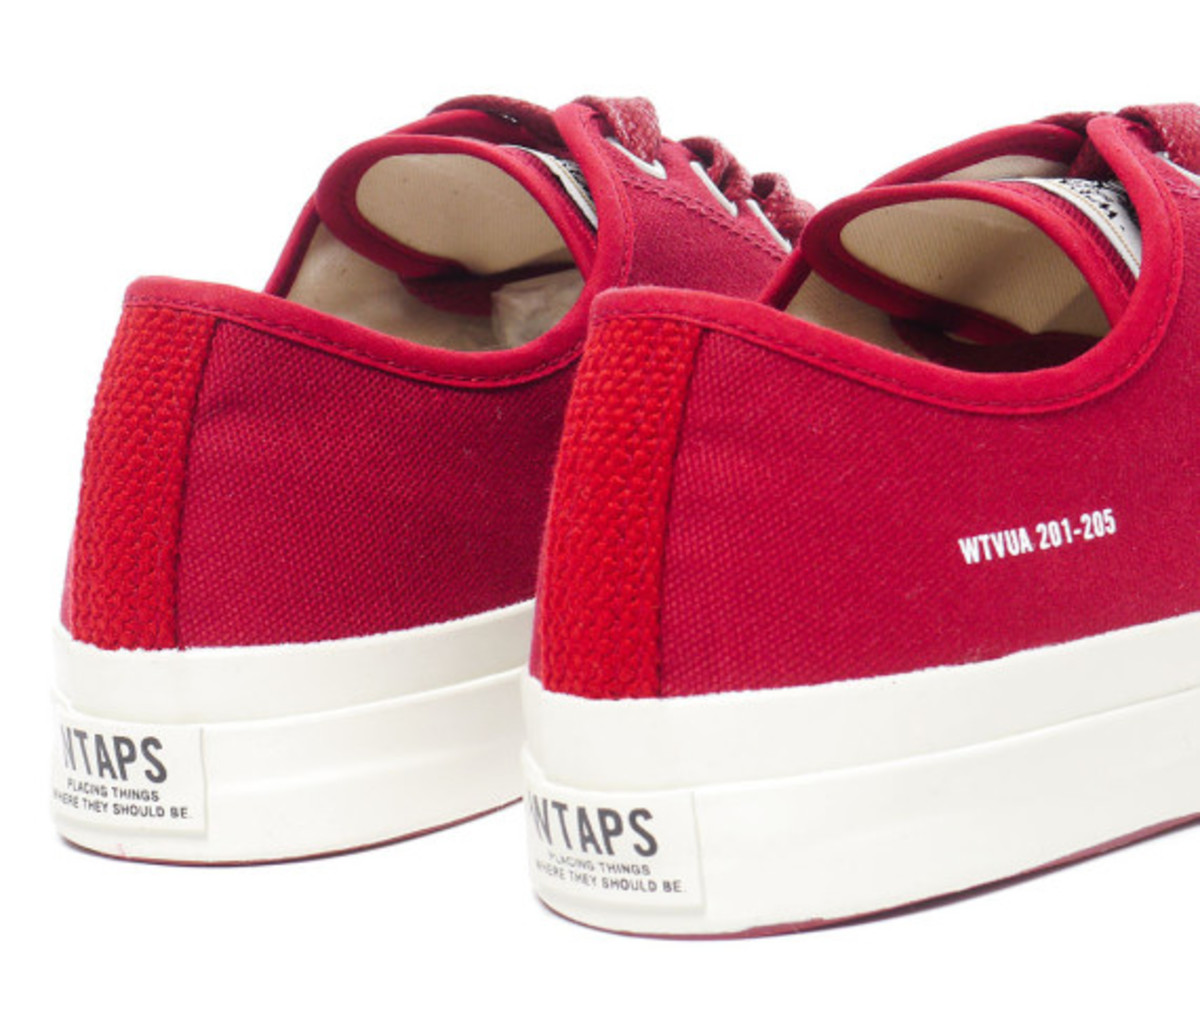 wtaps-spring-summer-2013-canvas-sneakers-08